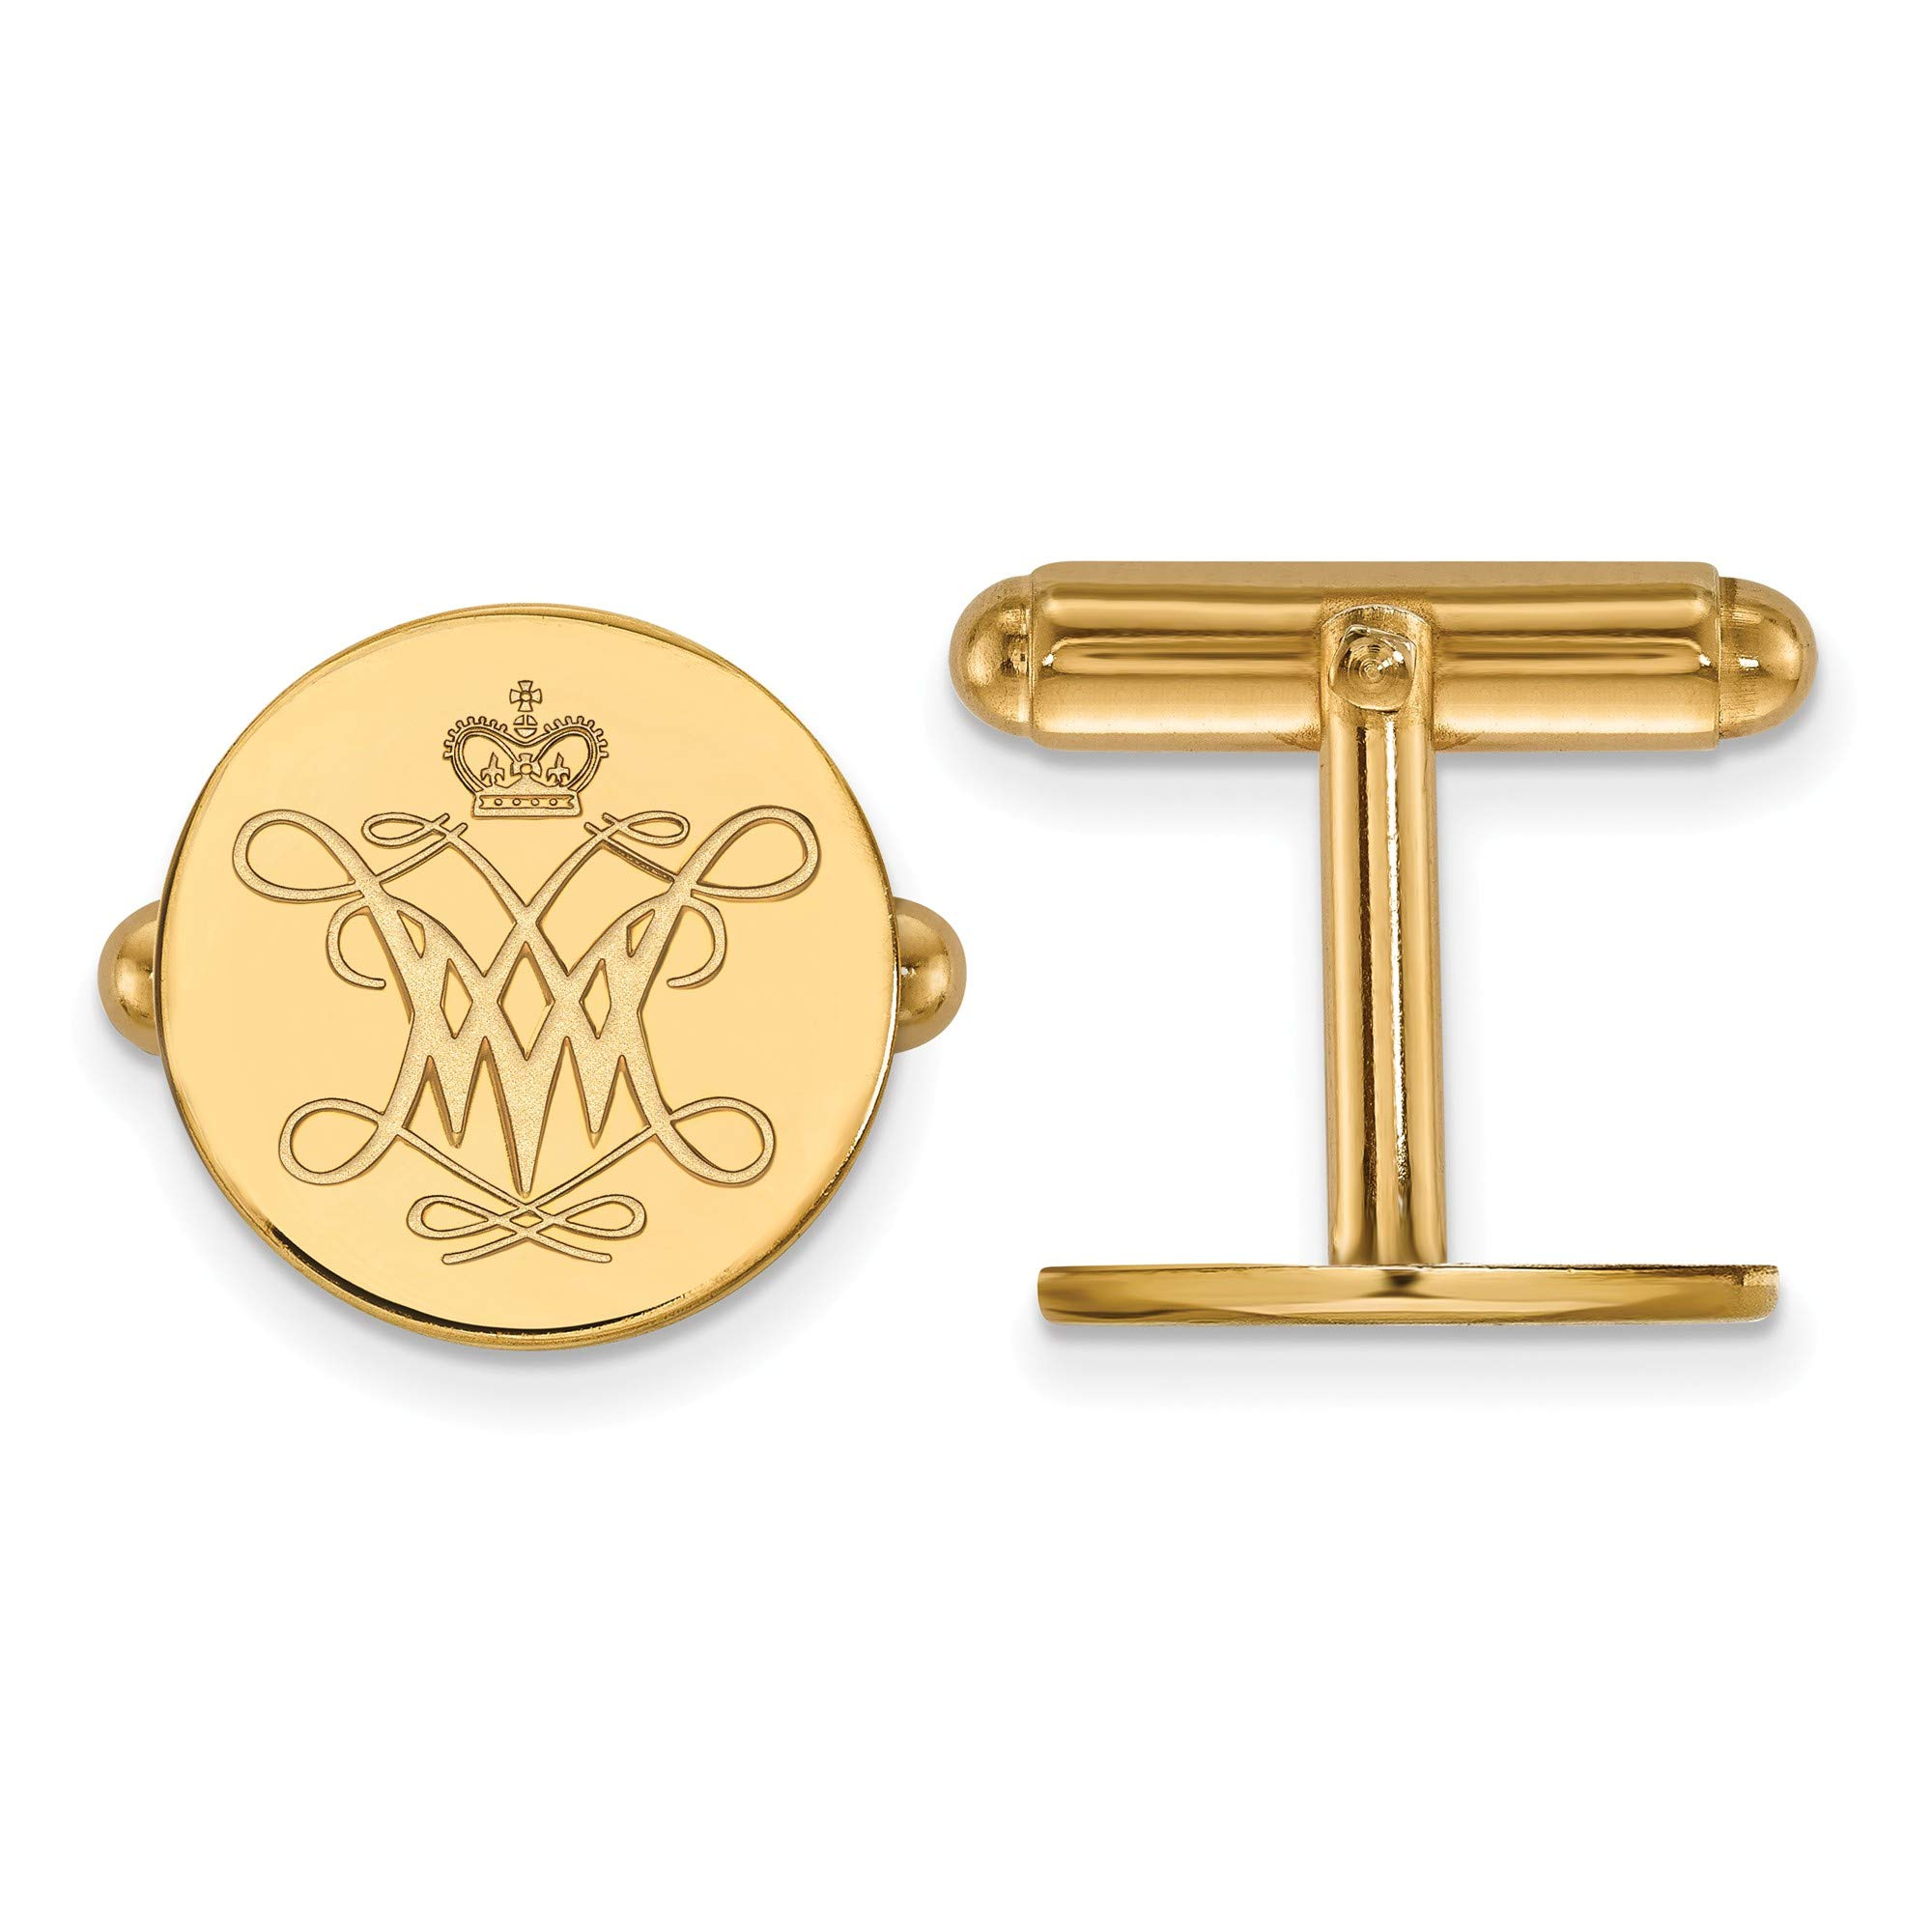 Kira Riley Gold Plated William and Mary Cuff Link